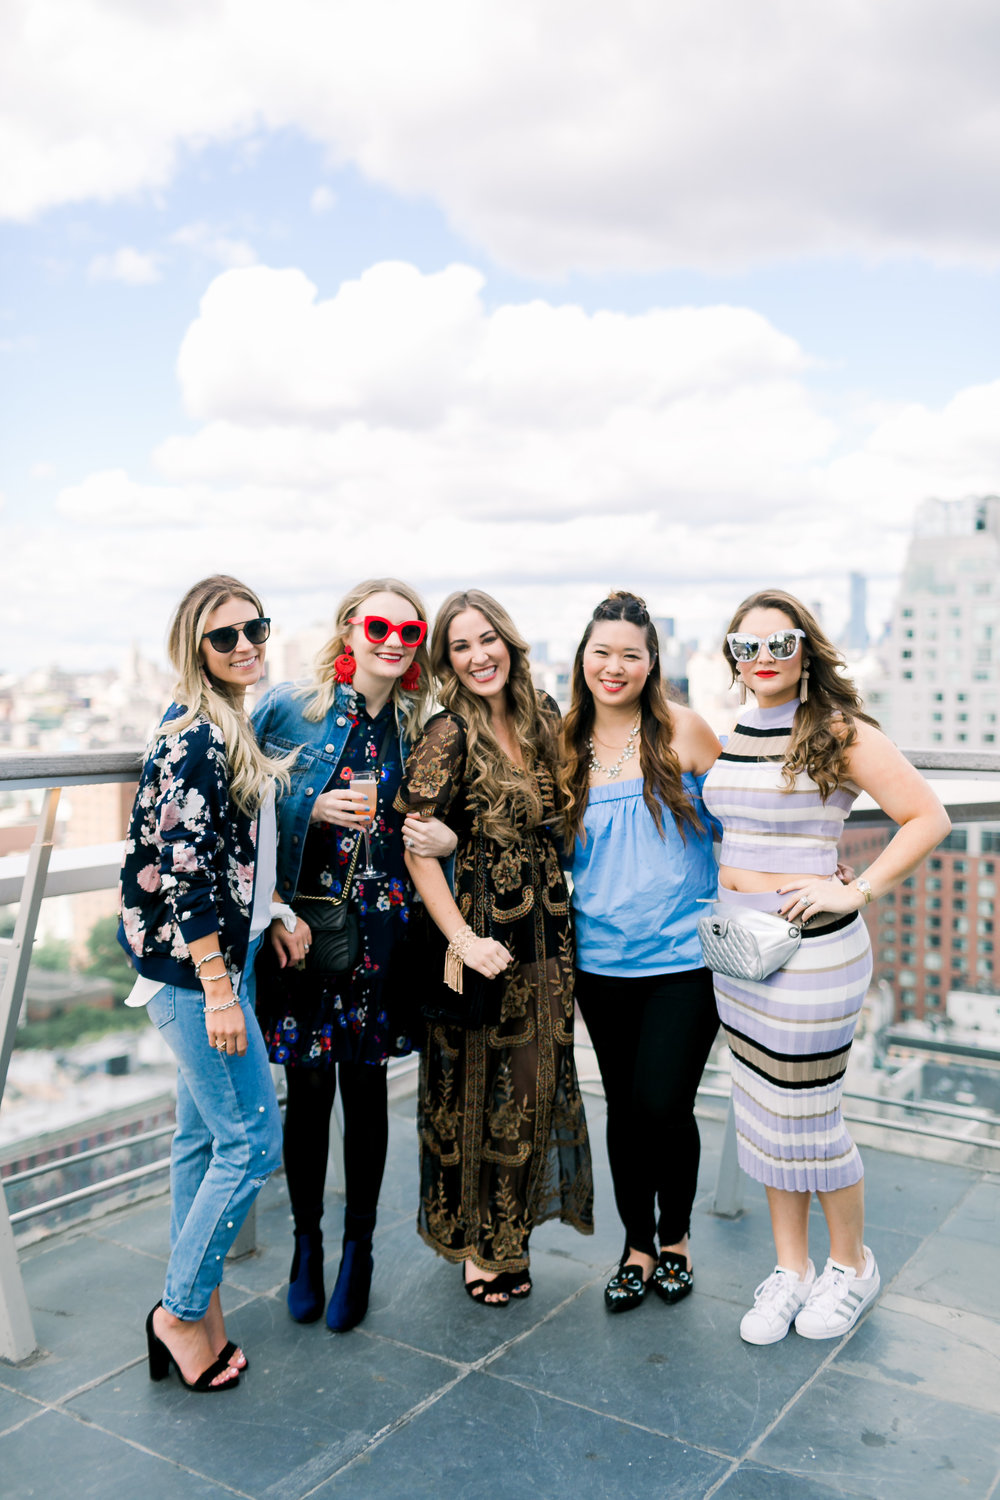 NYFW Rooftop party Ashlee K Nikols, Megan Bonner, Laura Boswell WalkinginMemphisinHighheels, Collins Tuohy Smith by Mary Kate Steele Photography